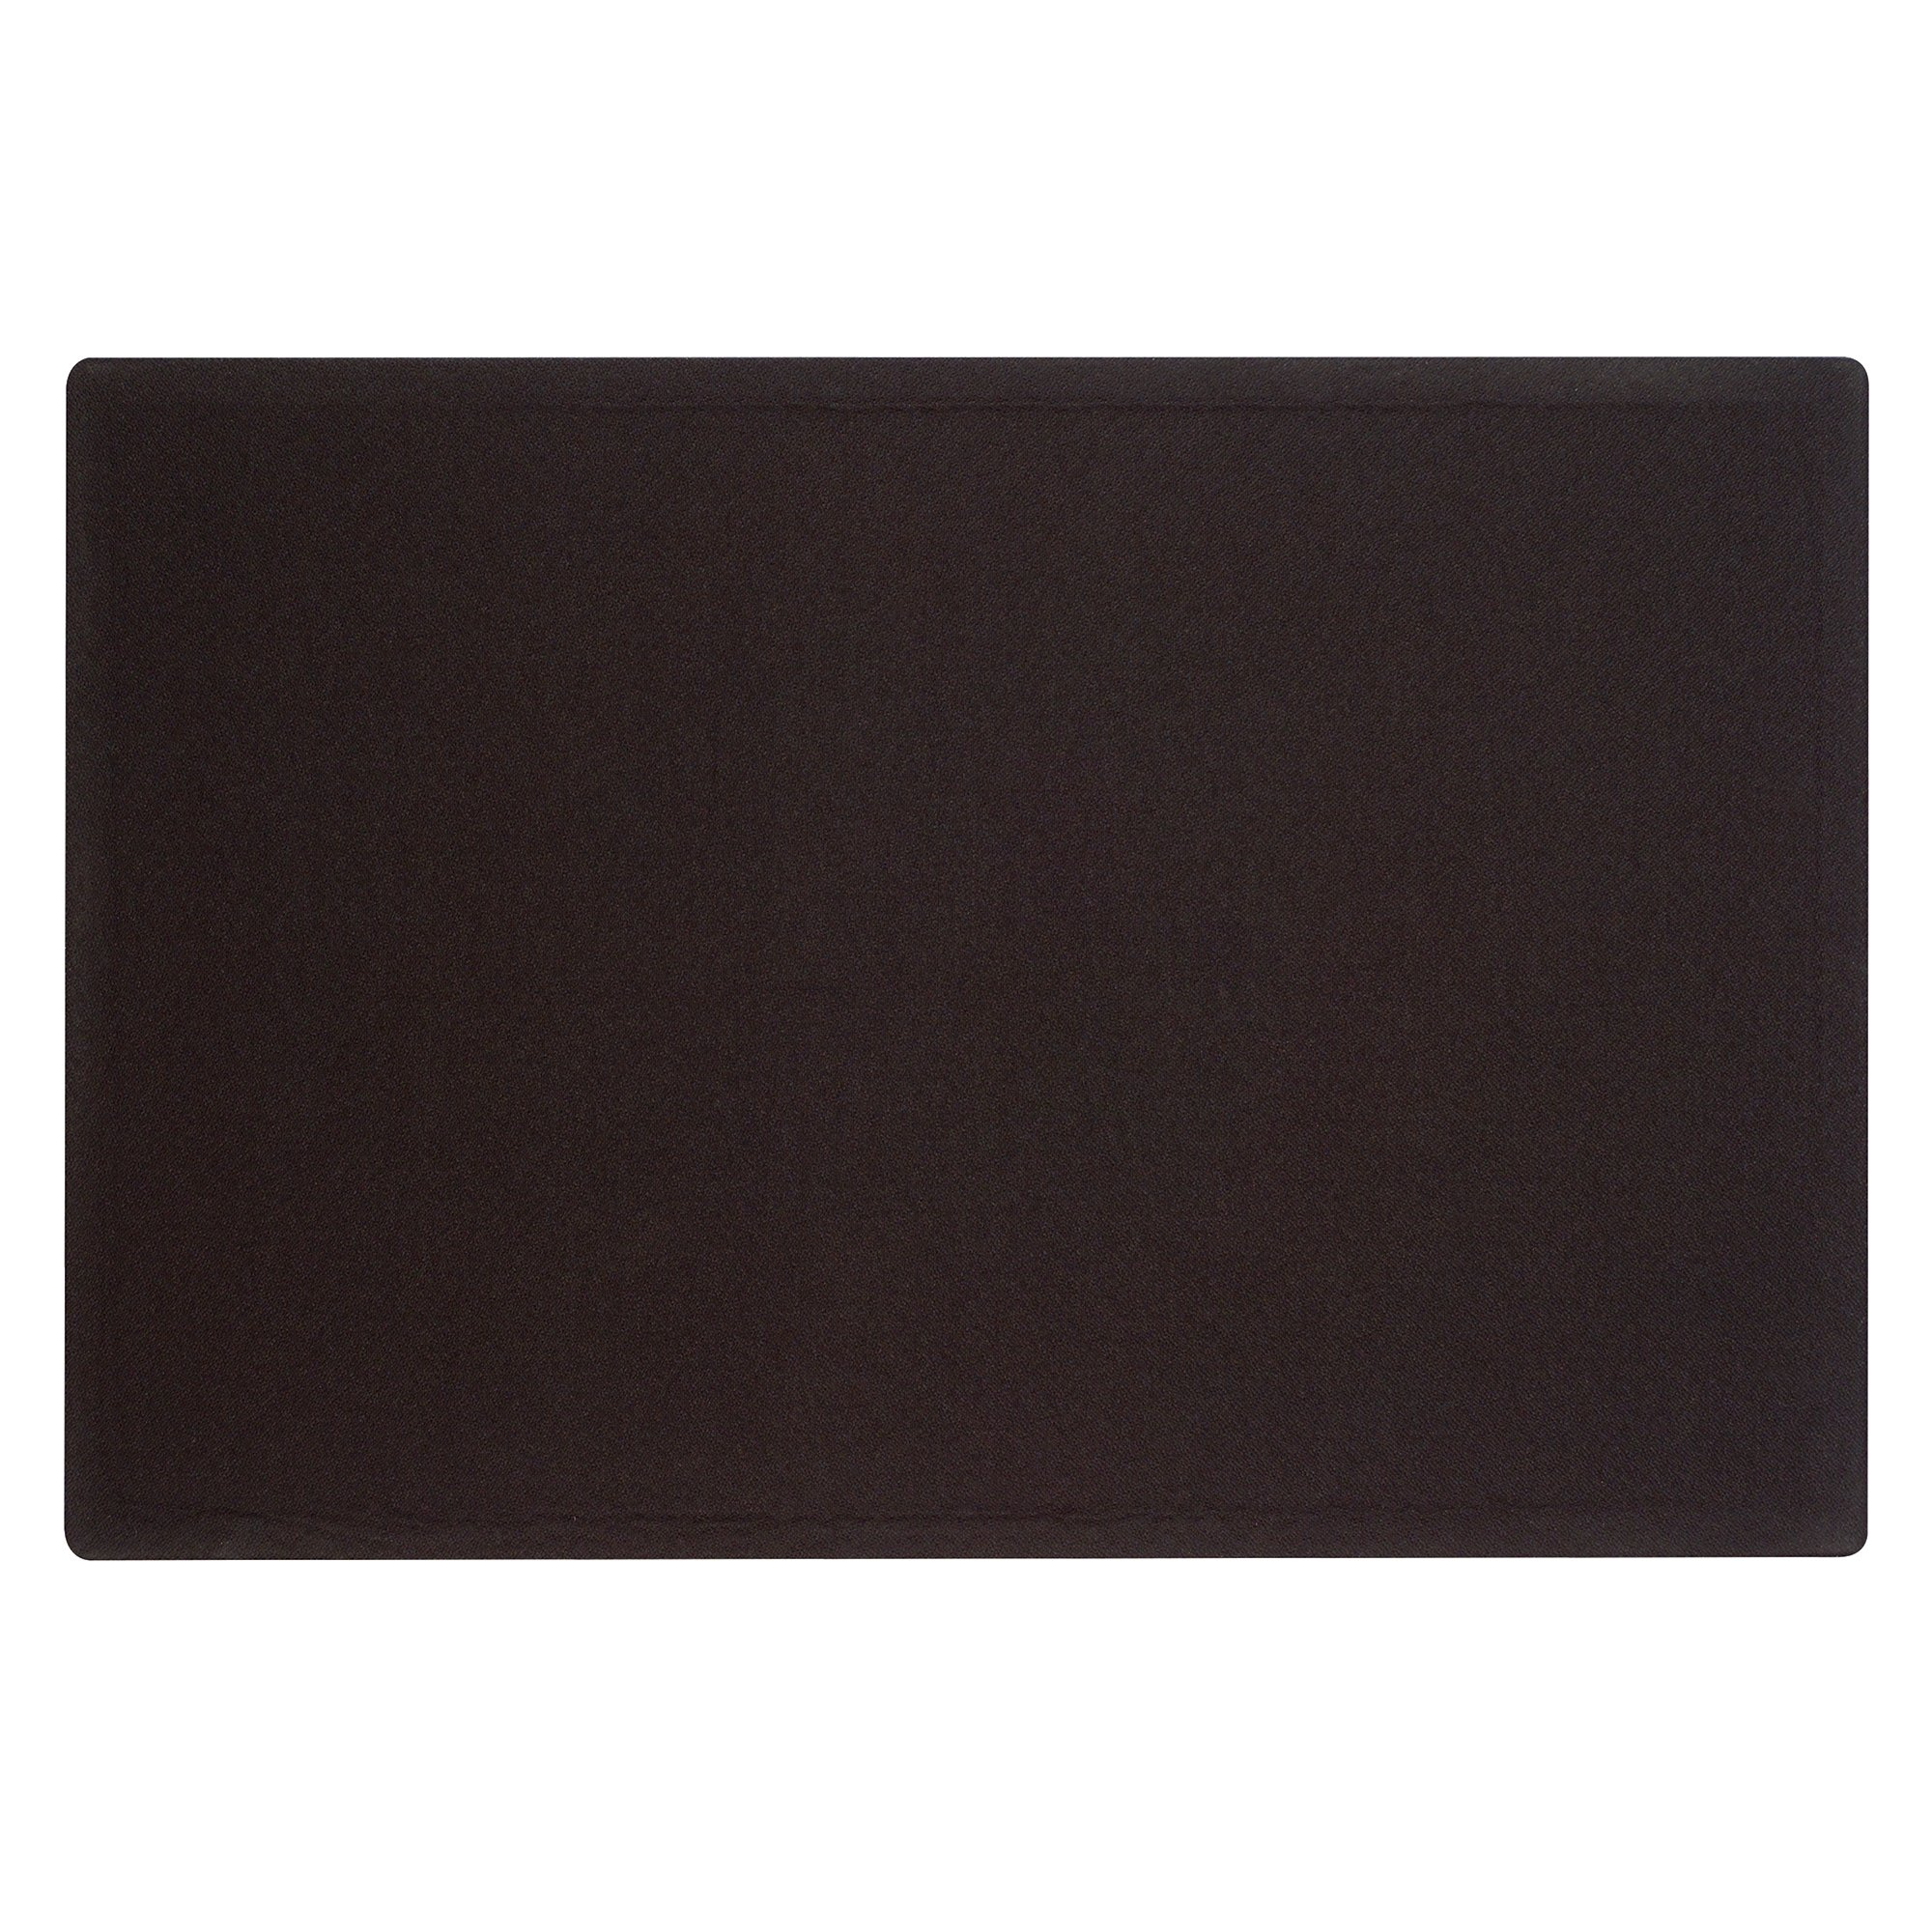 Quartet Oval Office Frameless Fabric Bulletin Board, 3 x 2 Feet, Black, One Board per Order (7683BK) by Quartet (Image #1)